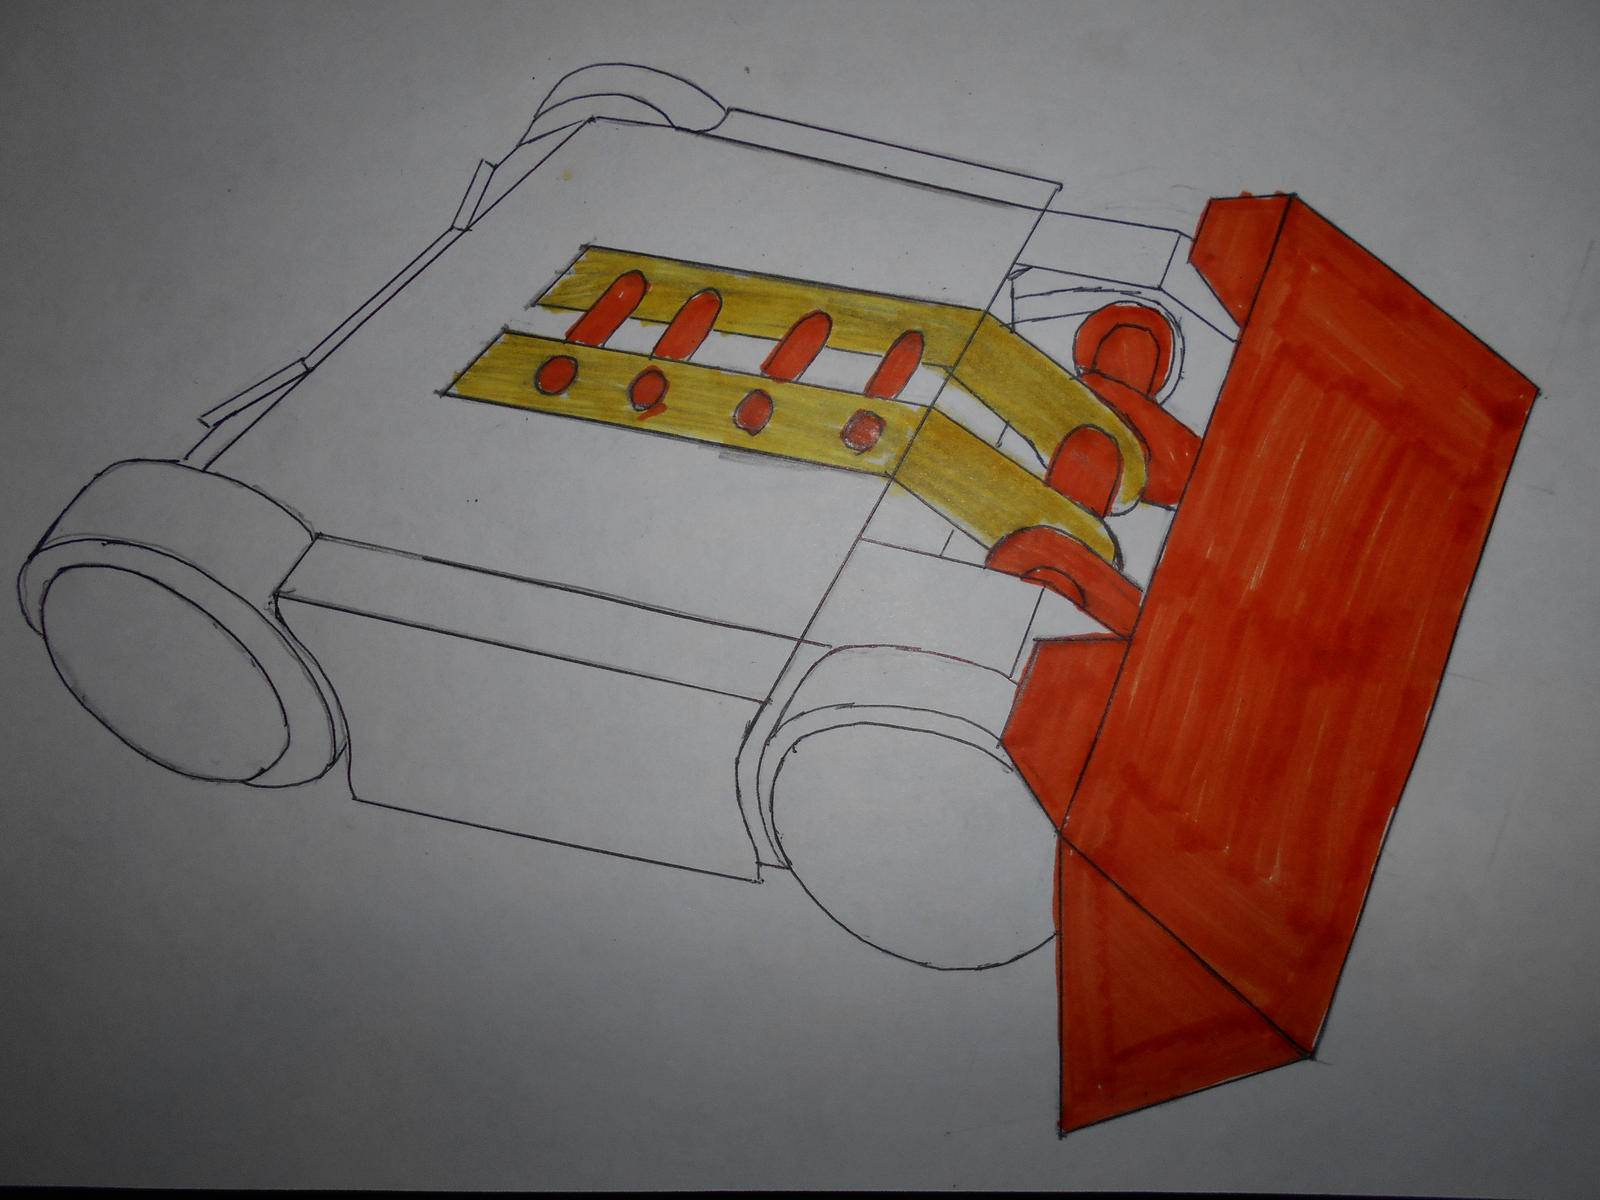 Robot Wars: King Buxton 20 Anti-Spinner wedge by sgtjack2016